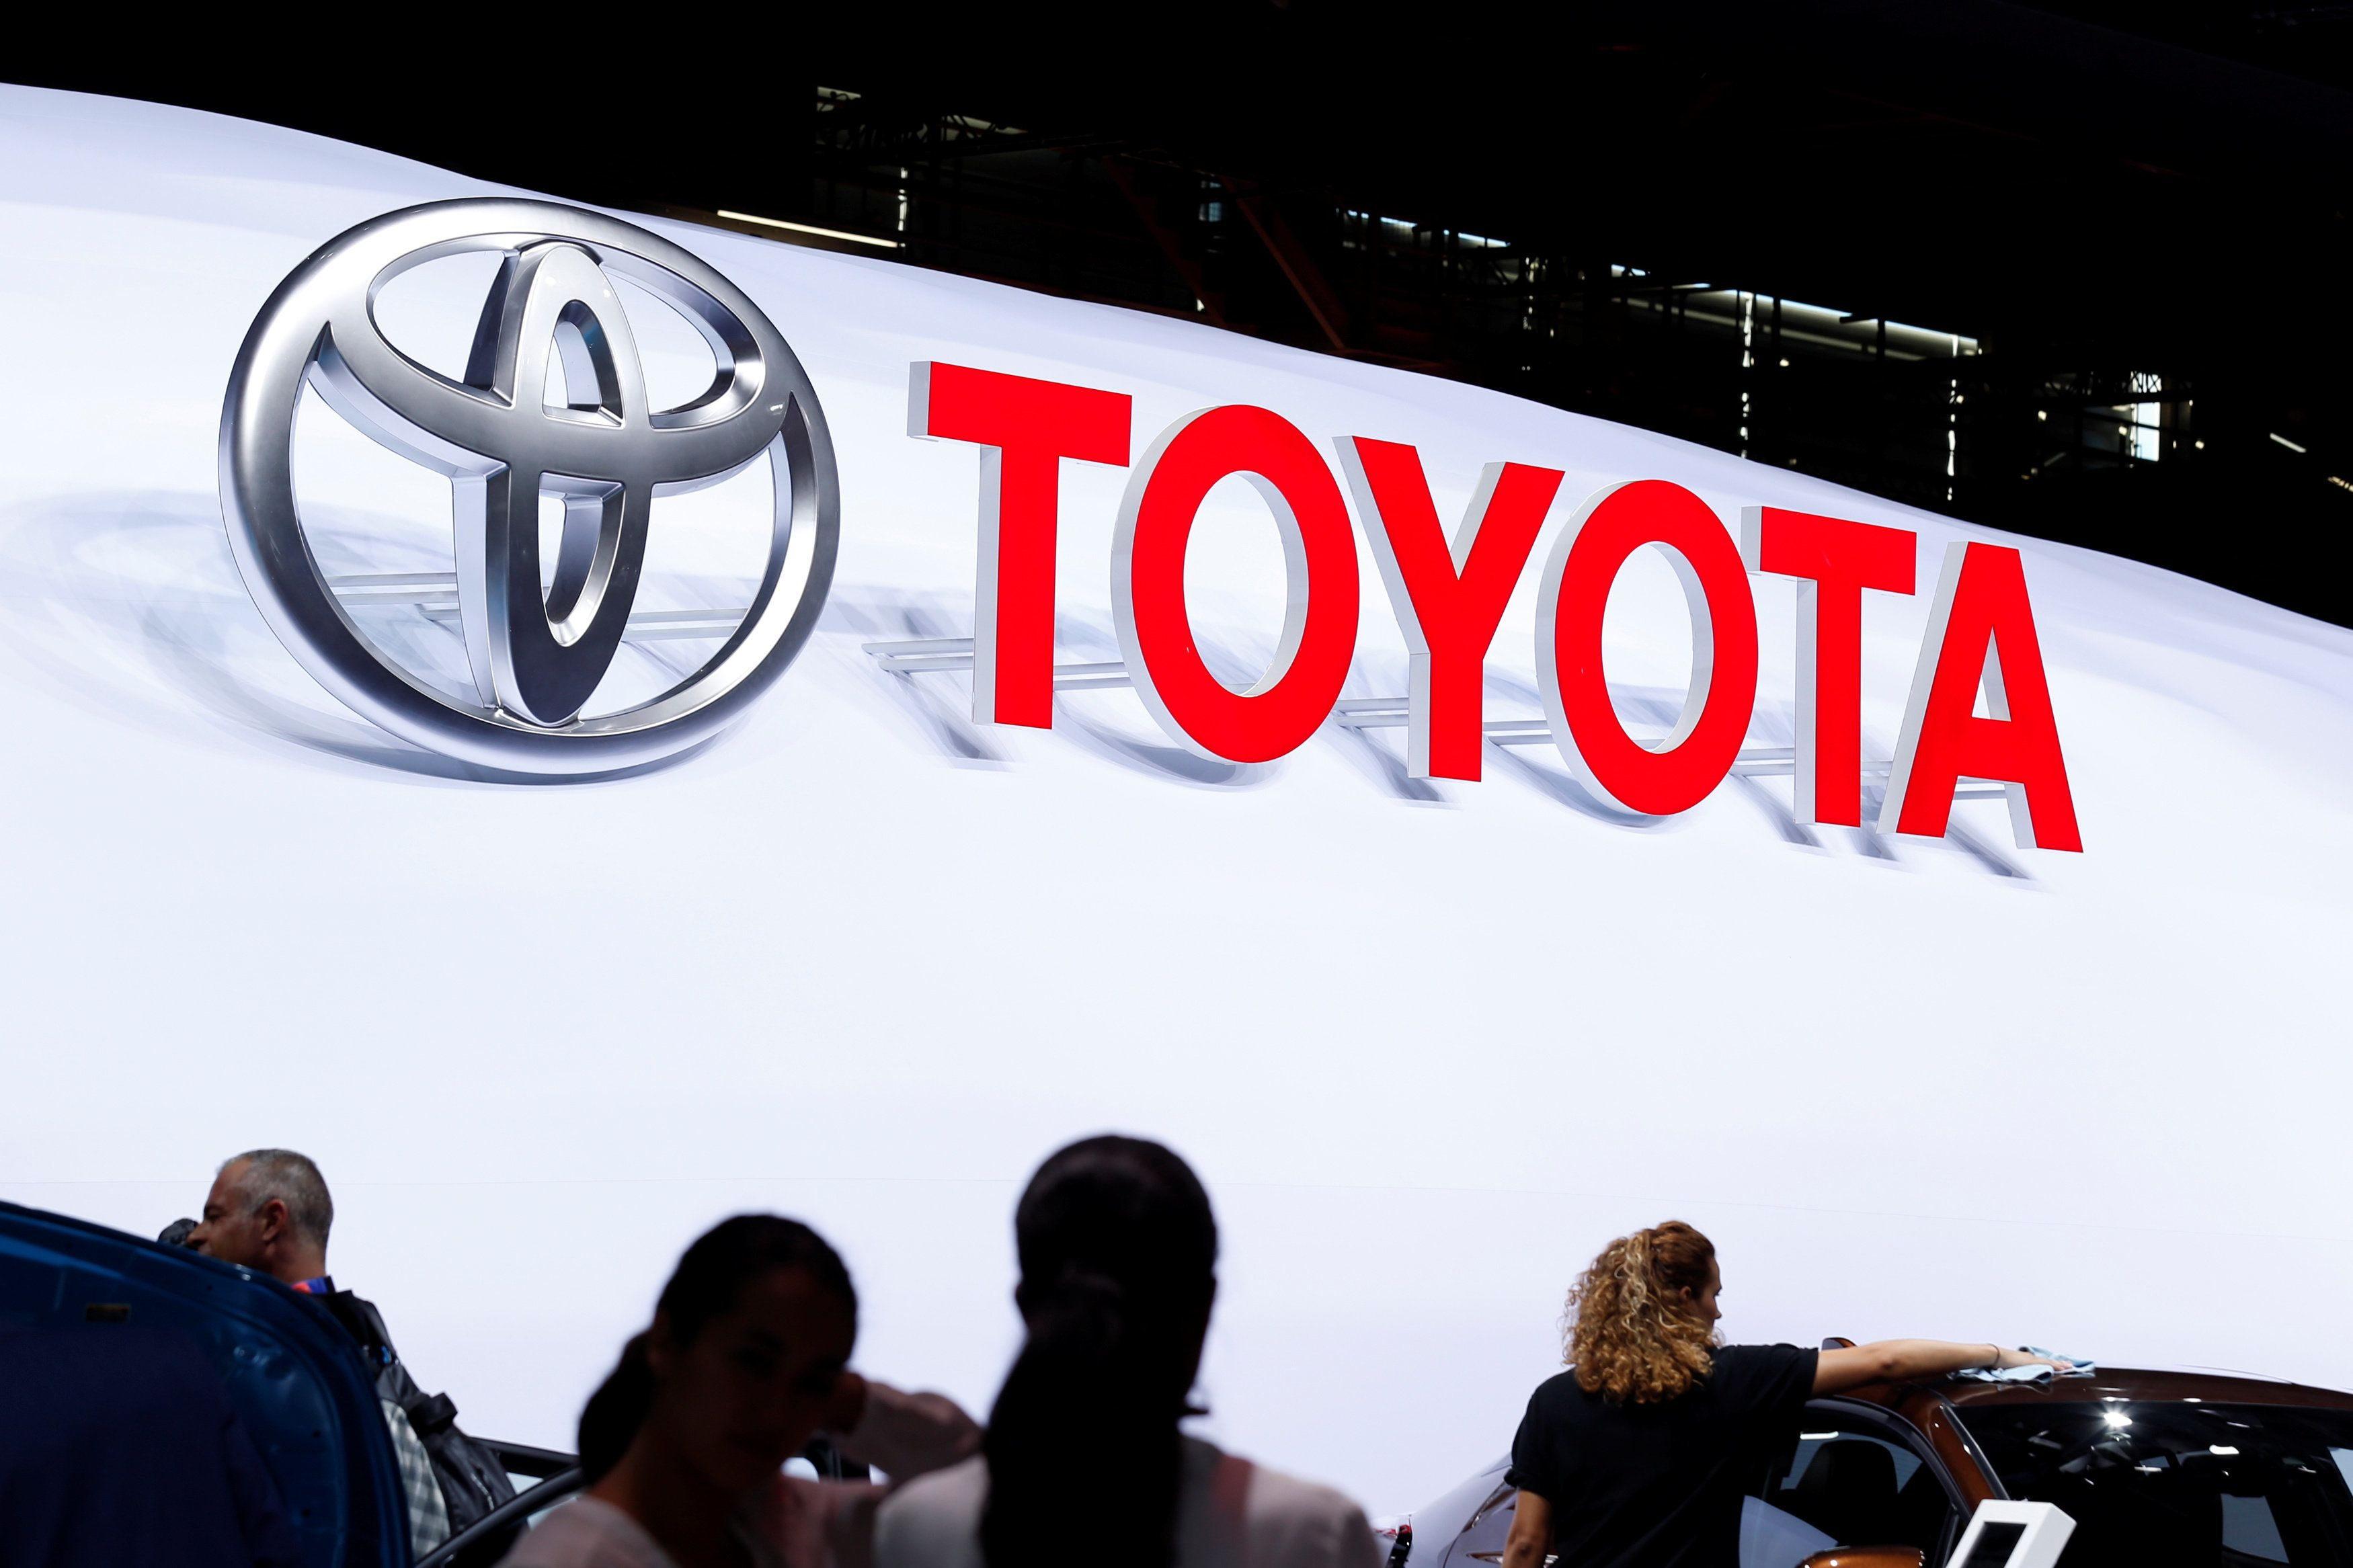 The logo of Japanese car manufacturer Toyota is displayed behind members of the media at the Paris auto show, in Paris, France, September 29, 2016.   REUTERS/Benoit Tessier